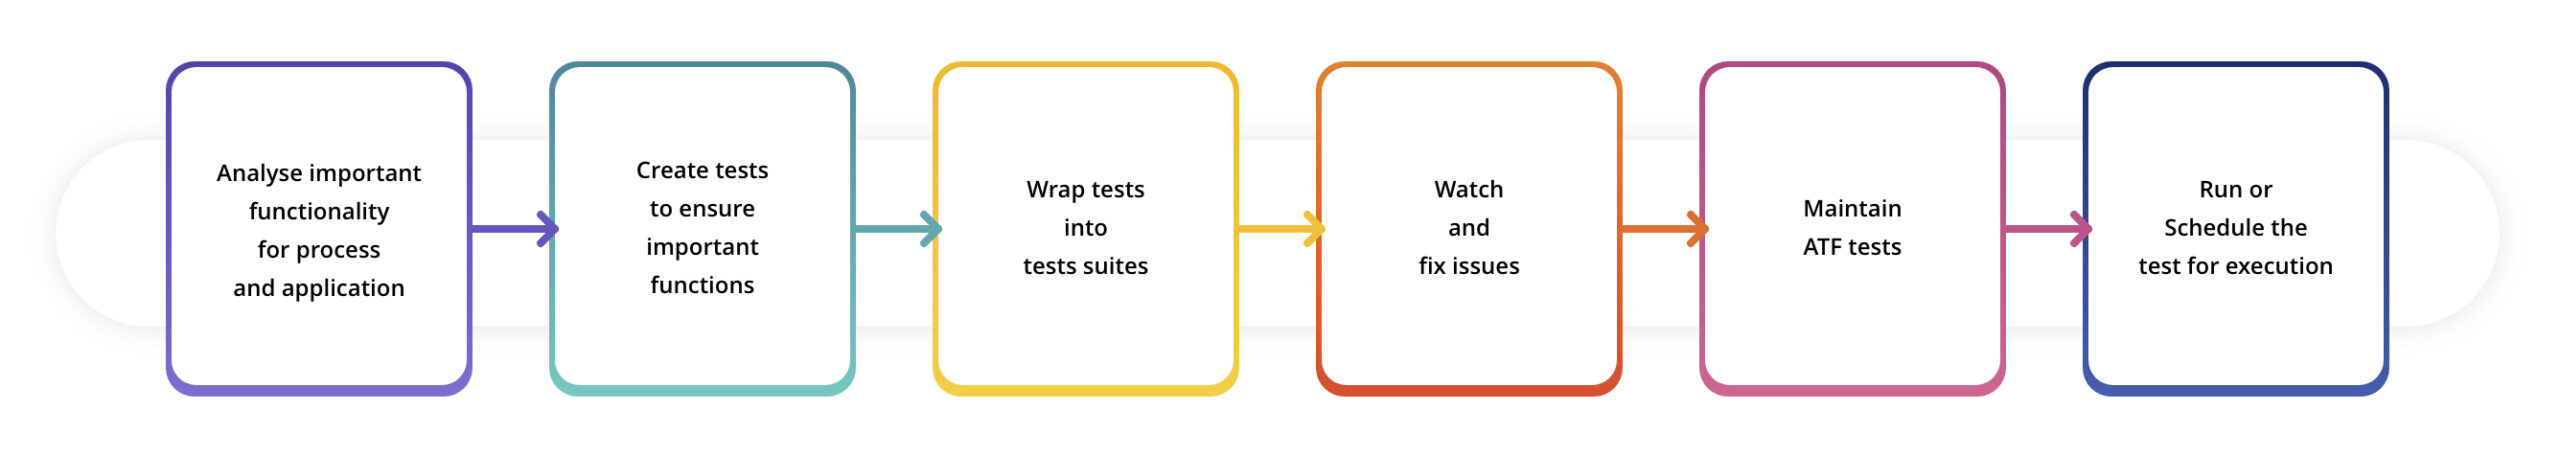 img-blog-automated-testing-benefits-servicenow-post